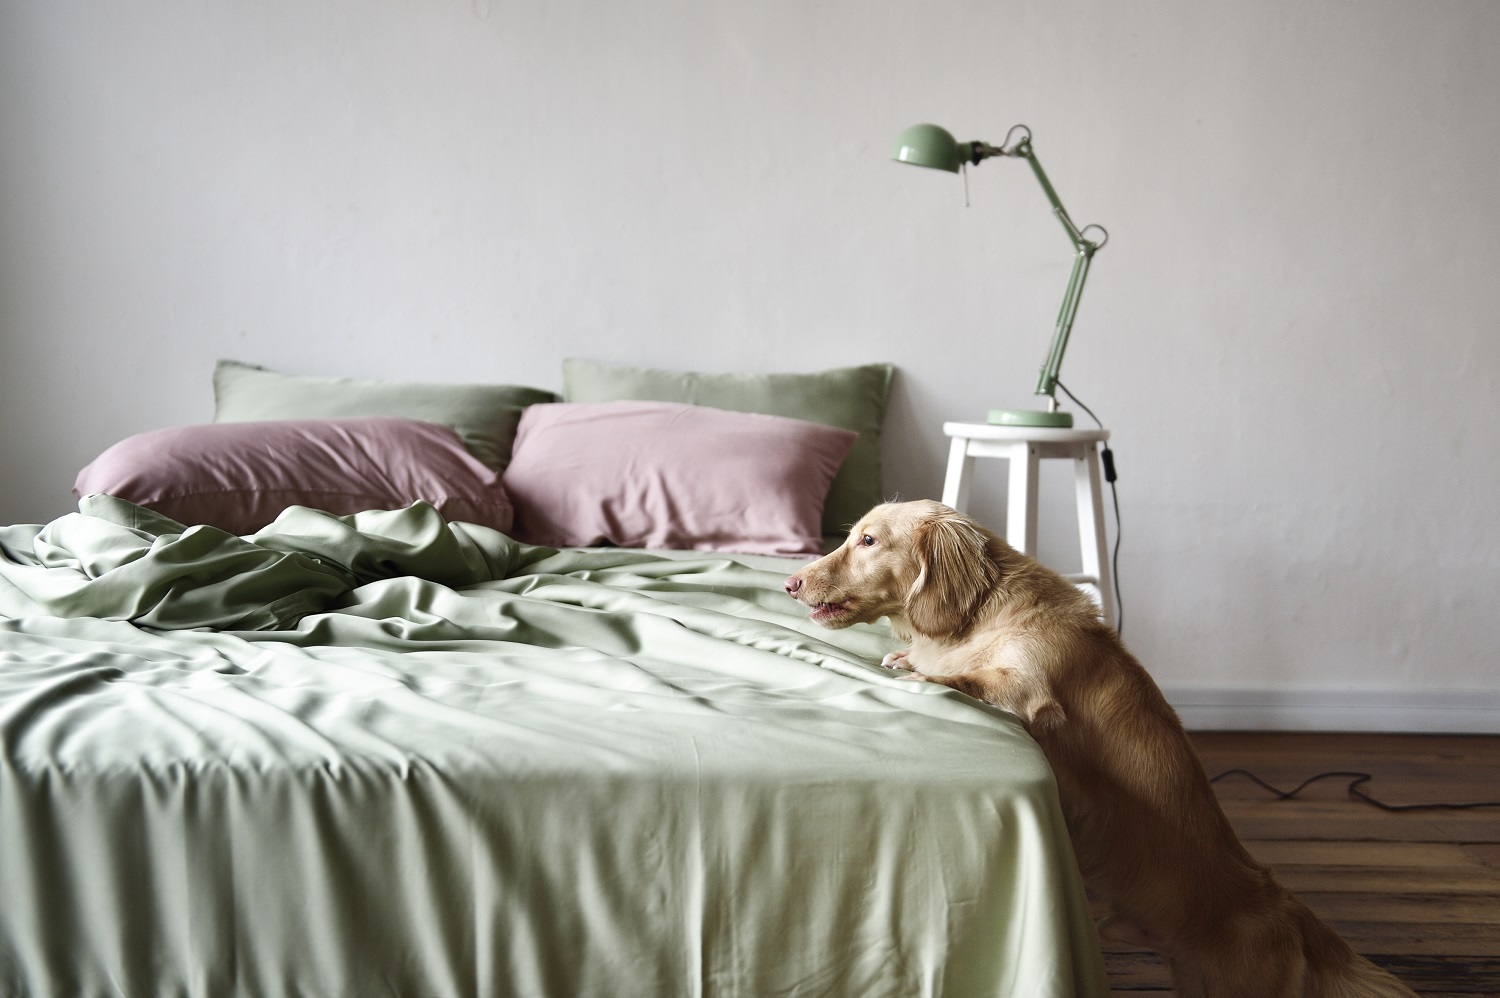 protect-the-environment-while-you-sleep-with-sunday-bedding-sustainable-bed-linens